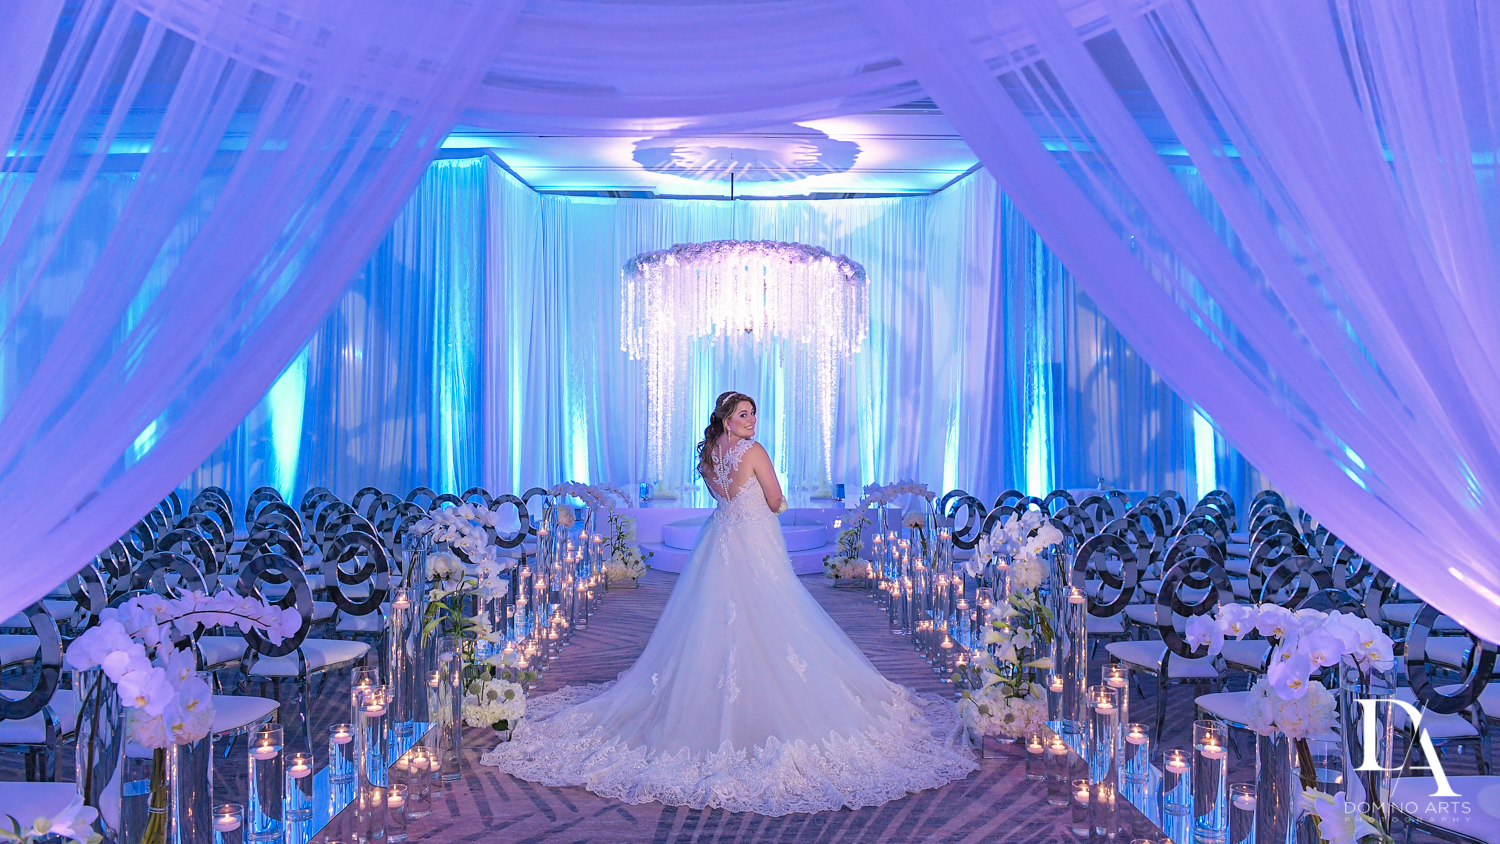 Bride and ceremony decor at Ultimate Events Wedding at Turnberry Isle Resort Miami by Domino Arts Photography